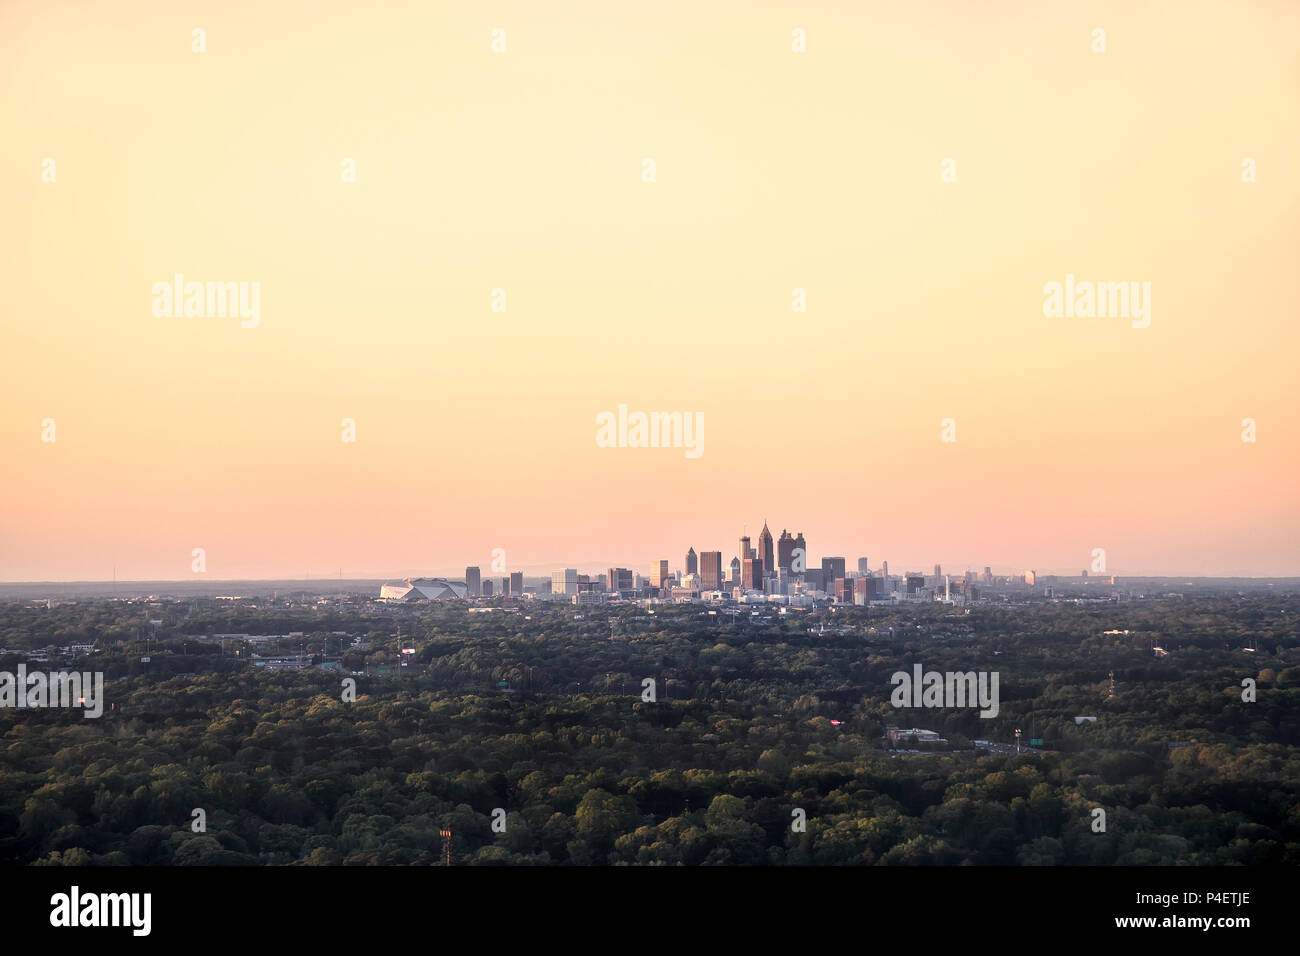 Skyline of Atlanta, Georgia from the air, USA - Stock Image